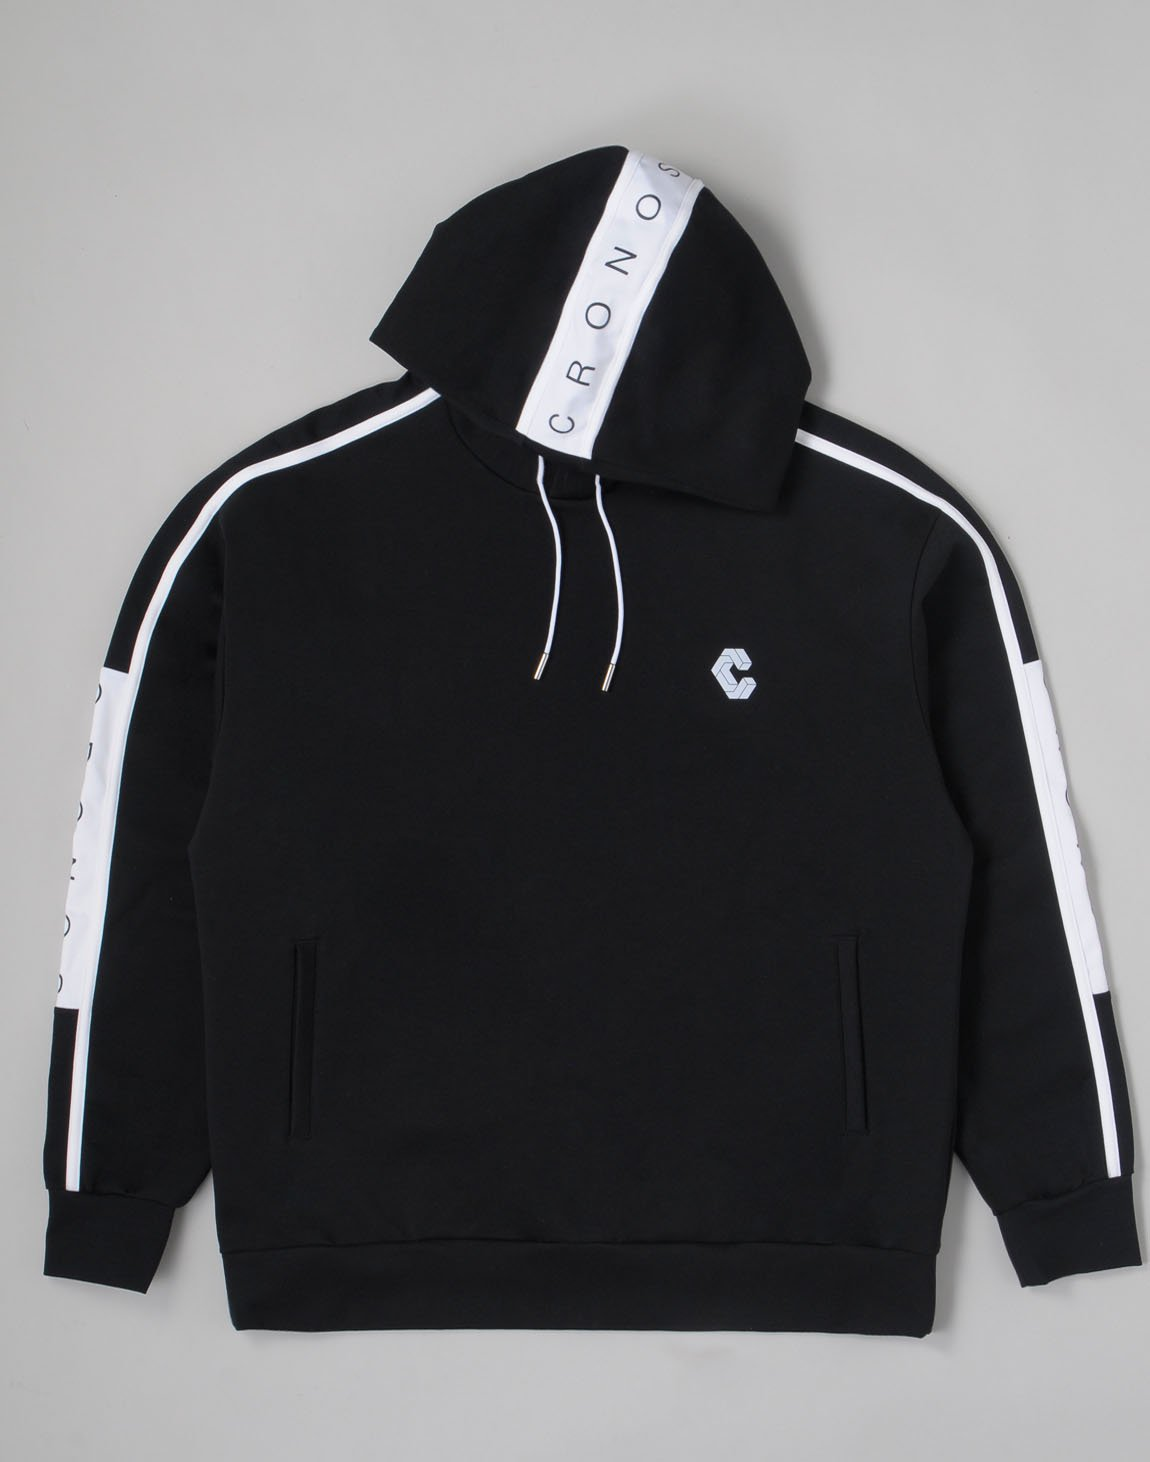 <img class='new_mark_img1' src='https://img.shop-pro.jp/img/new/icons1.gif' style='border:none;display:inline;margin:0px;padding:0px;width:auto;' />CRONOS ARM LINE LOGO HOODIE【BLACKxWHITE】